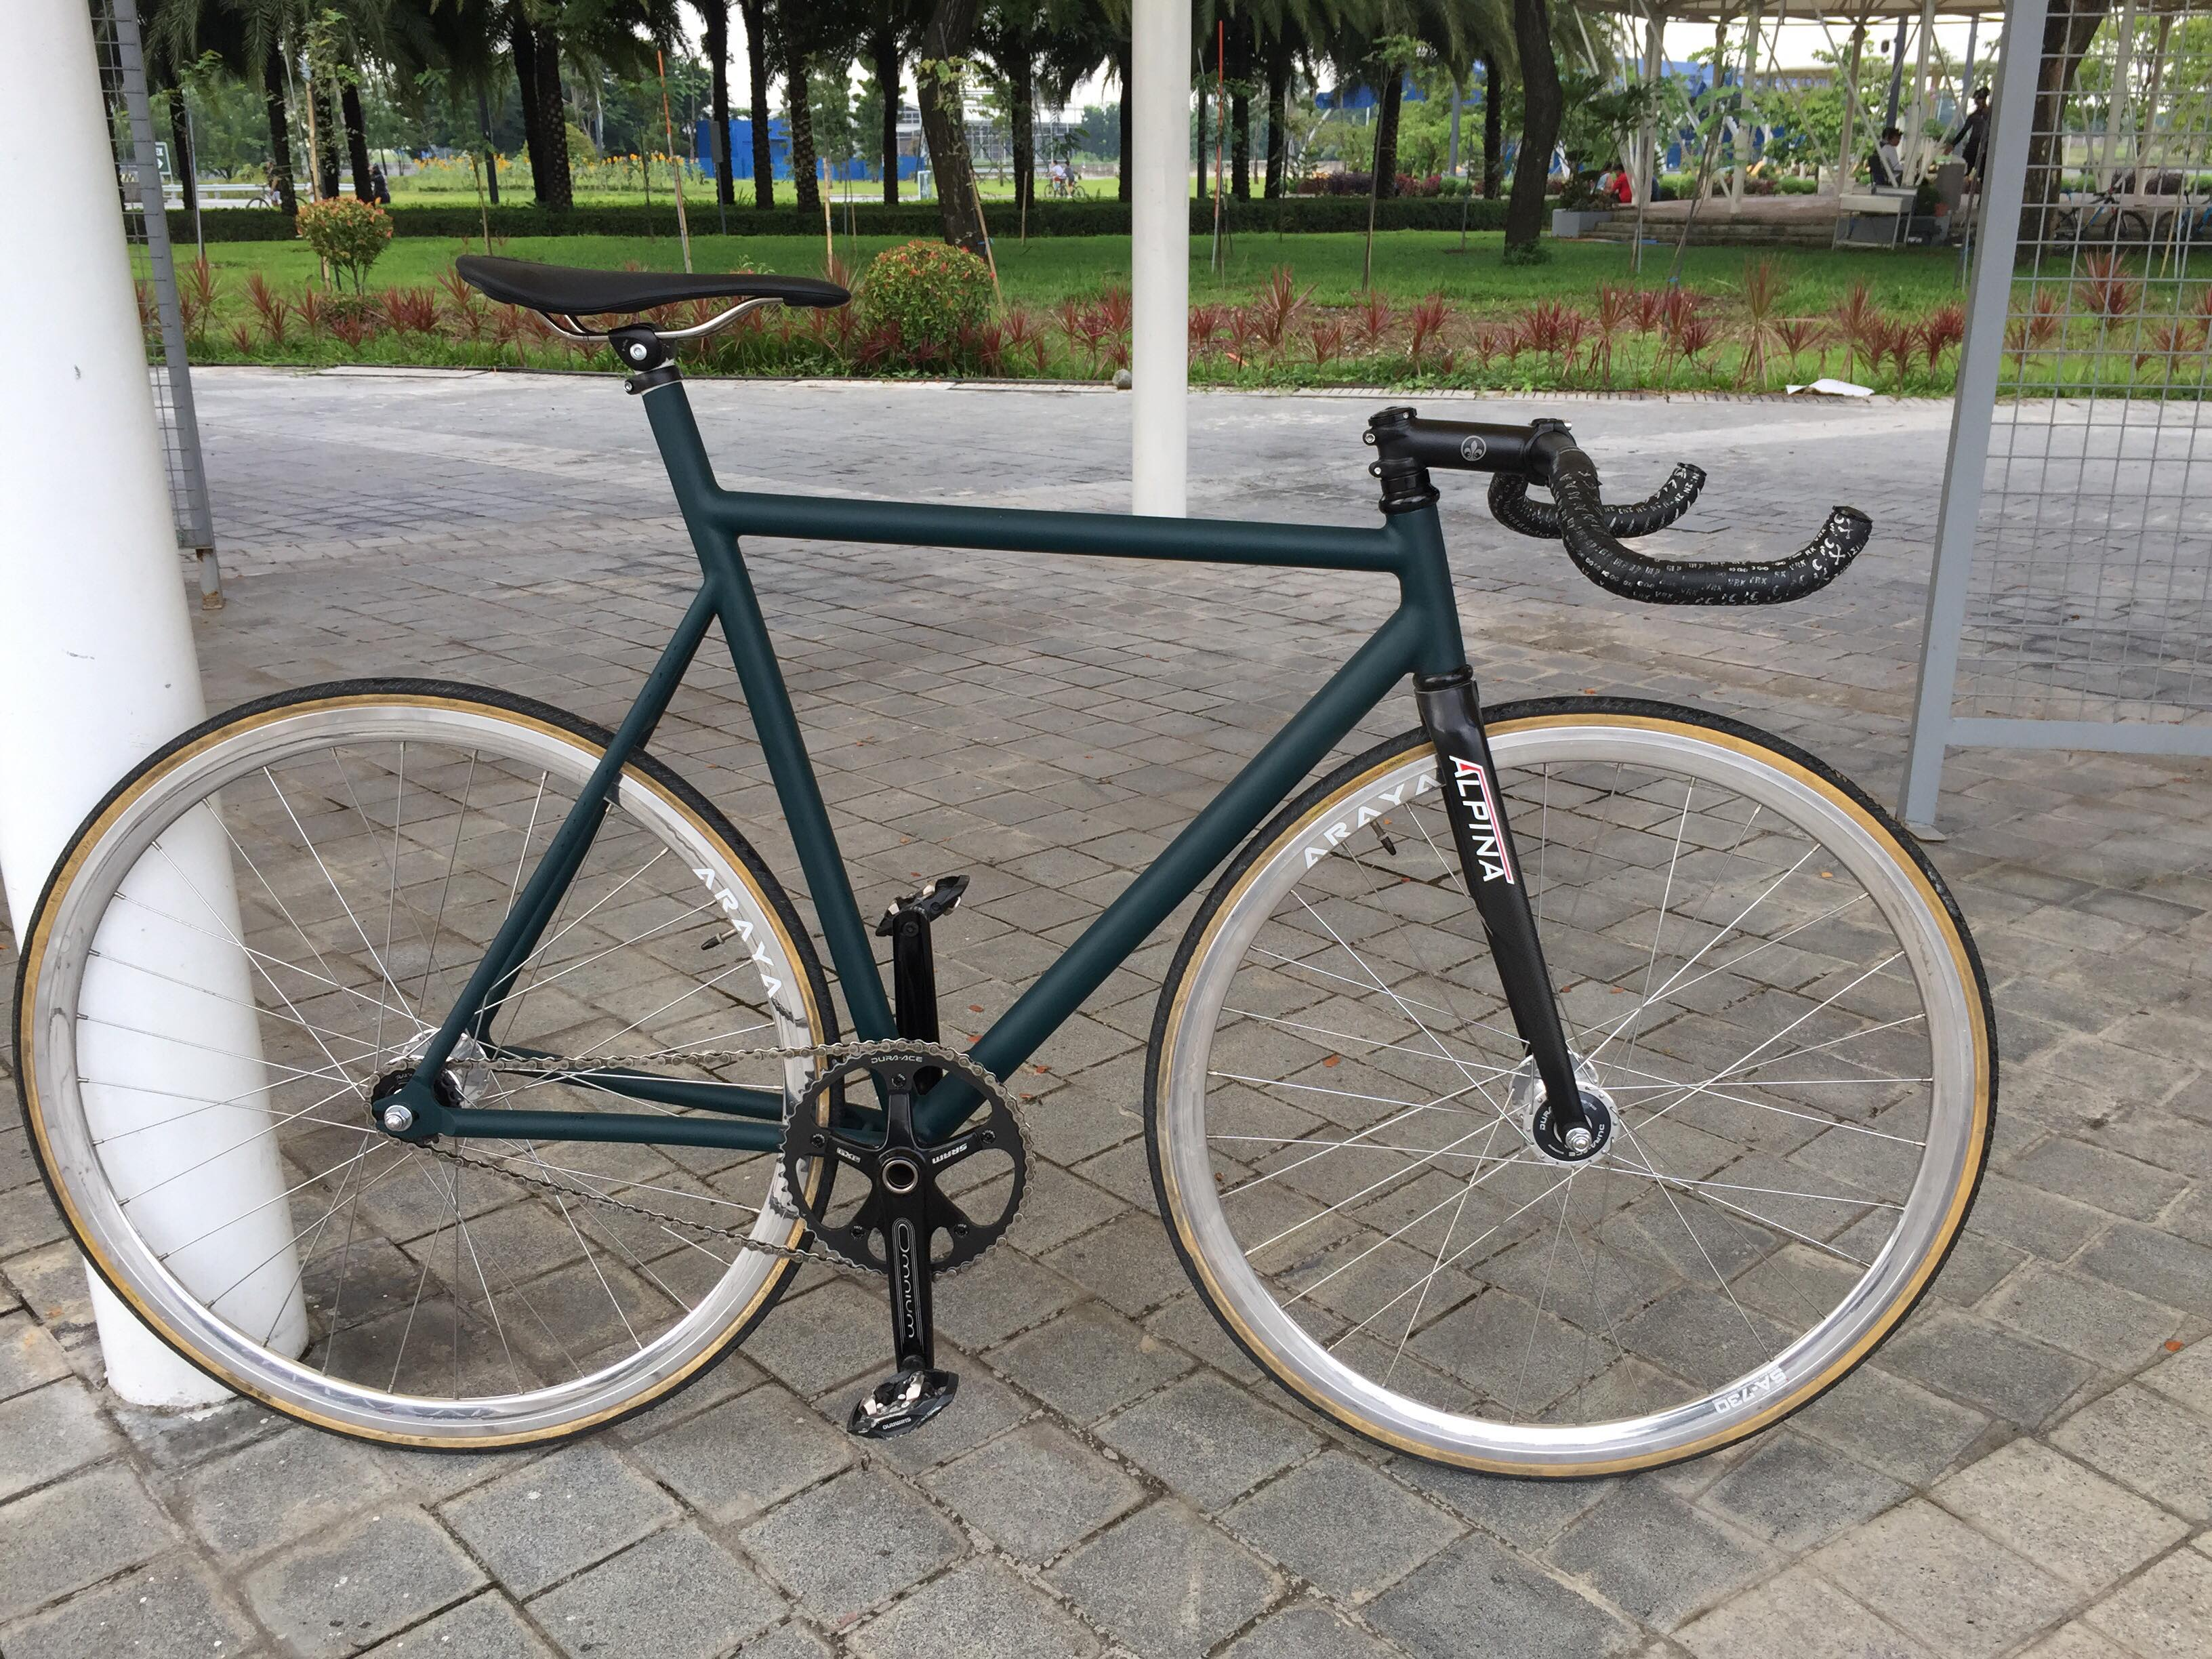 CK's Fixed Gear